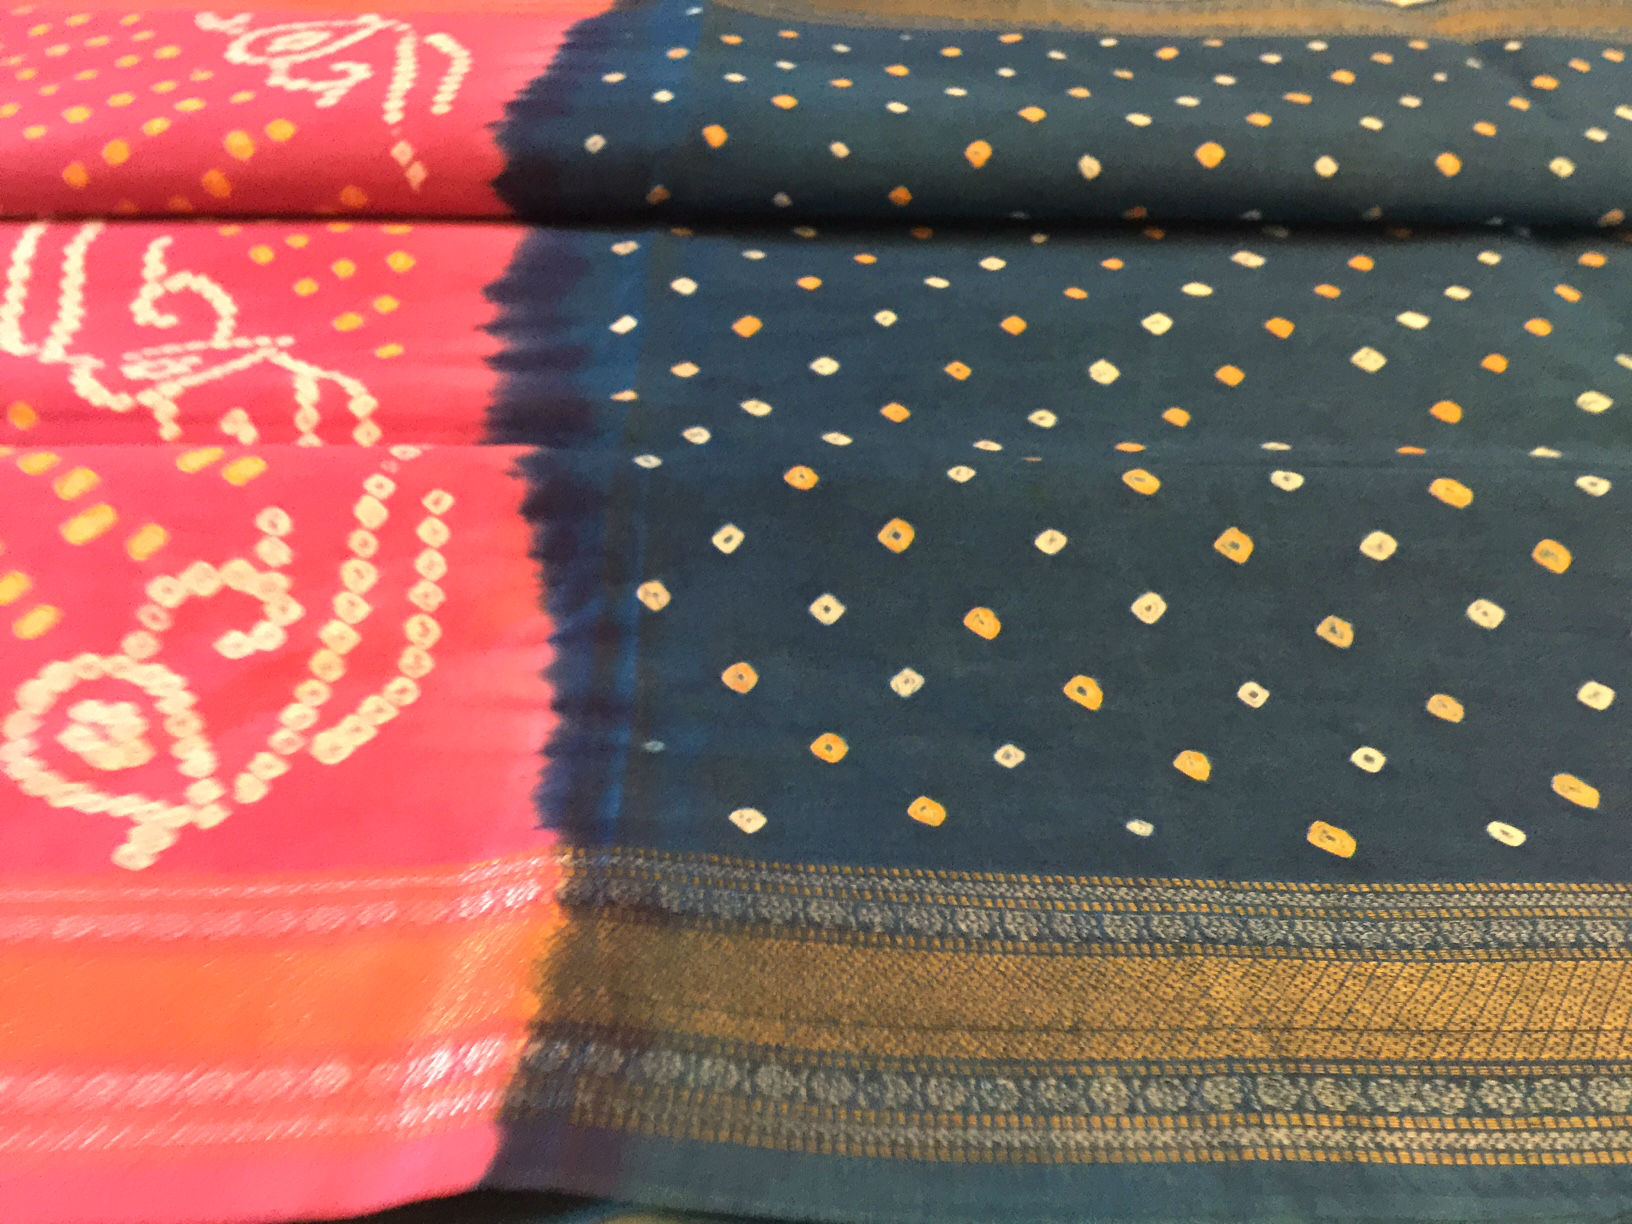 Cotton Bandhani Teal Pink with Zari Border